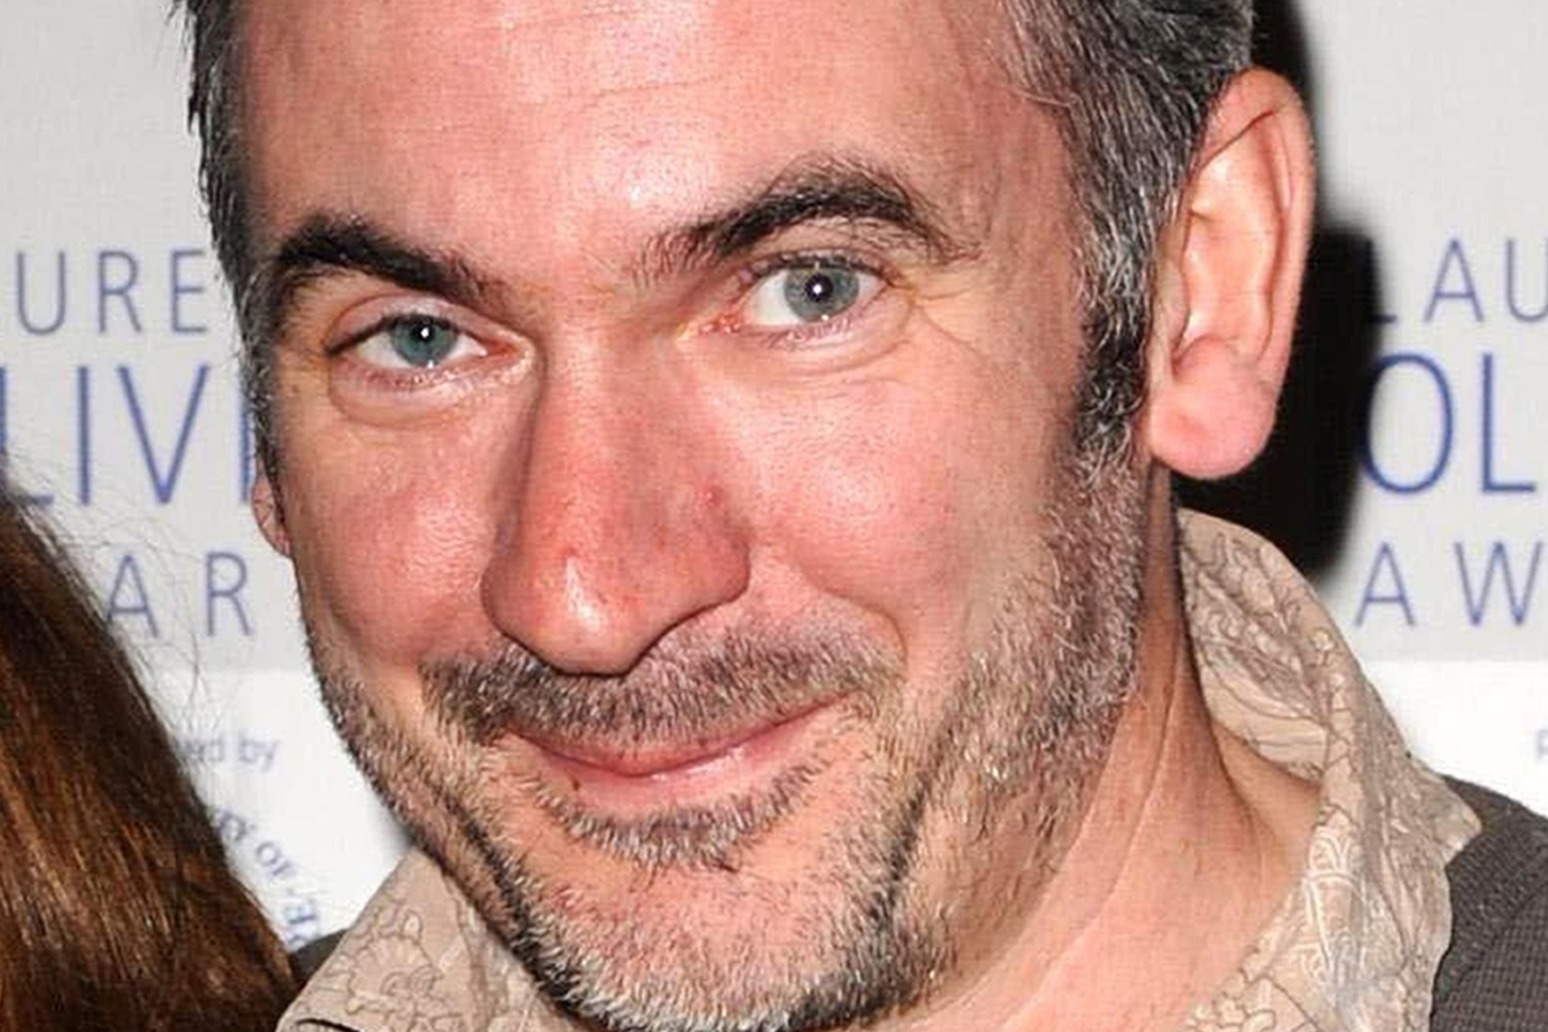 Friday Night Dinner star Paul Ritter dies aged 54 after brain tumour diagnosis